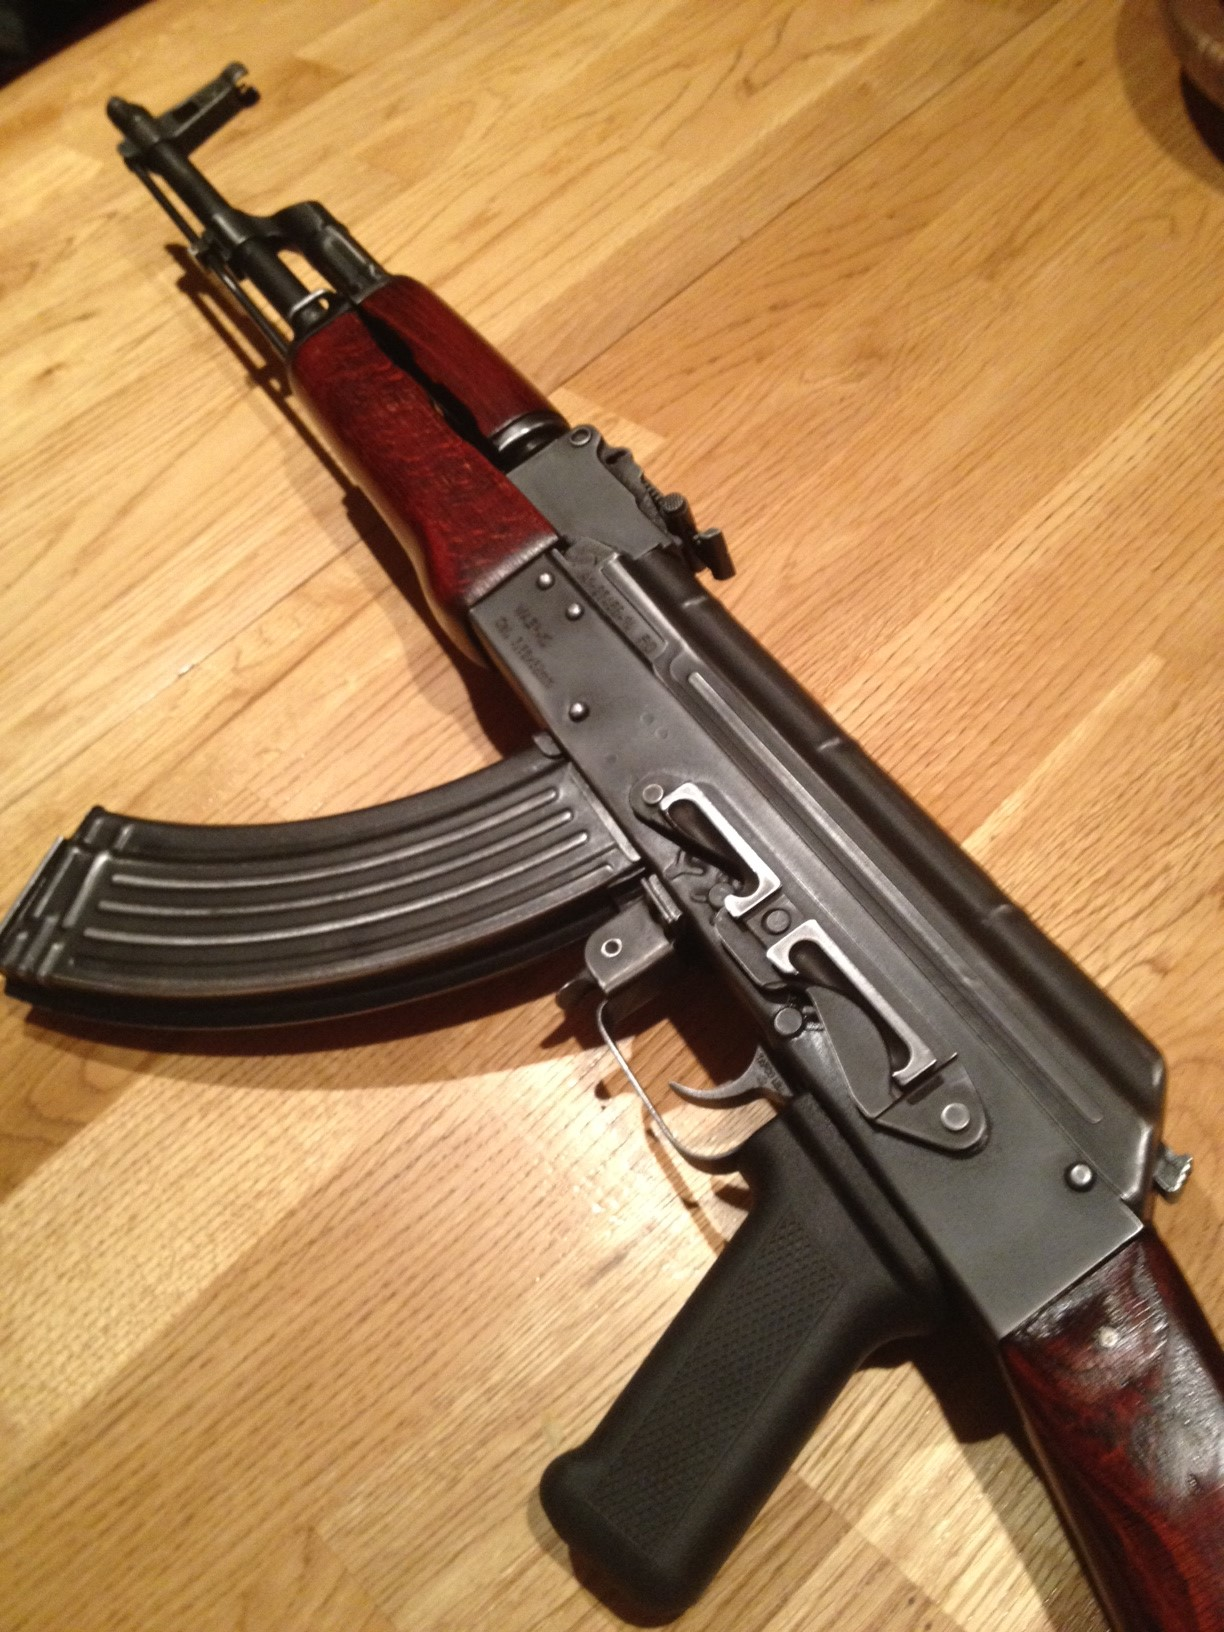 Ak ak 47 for sale by owner - Reassembly Final Thought Photos